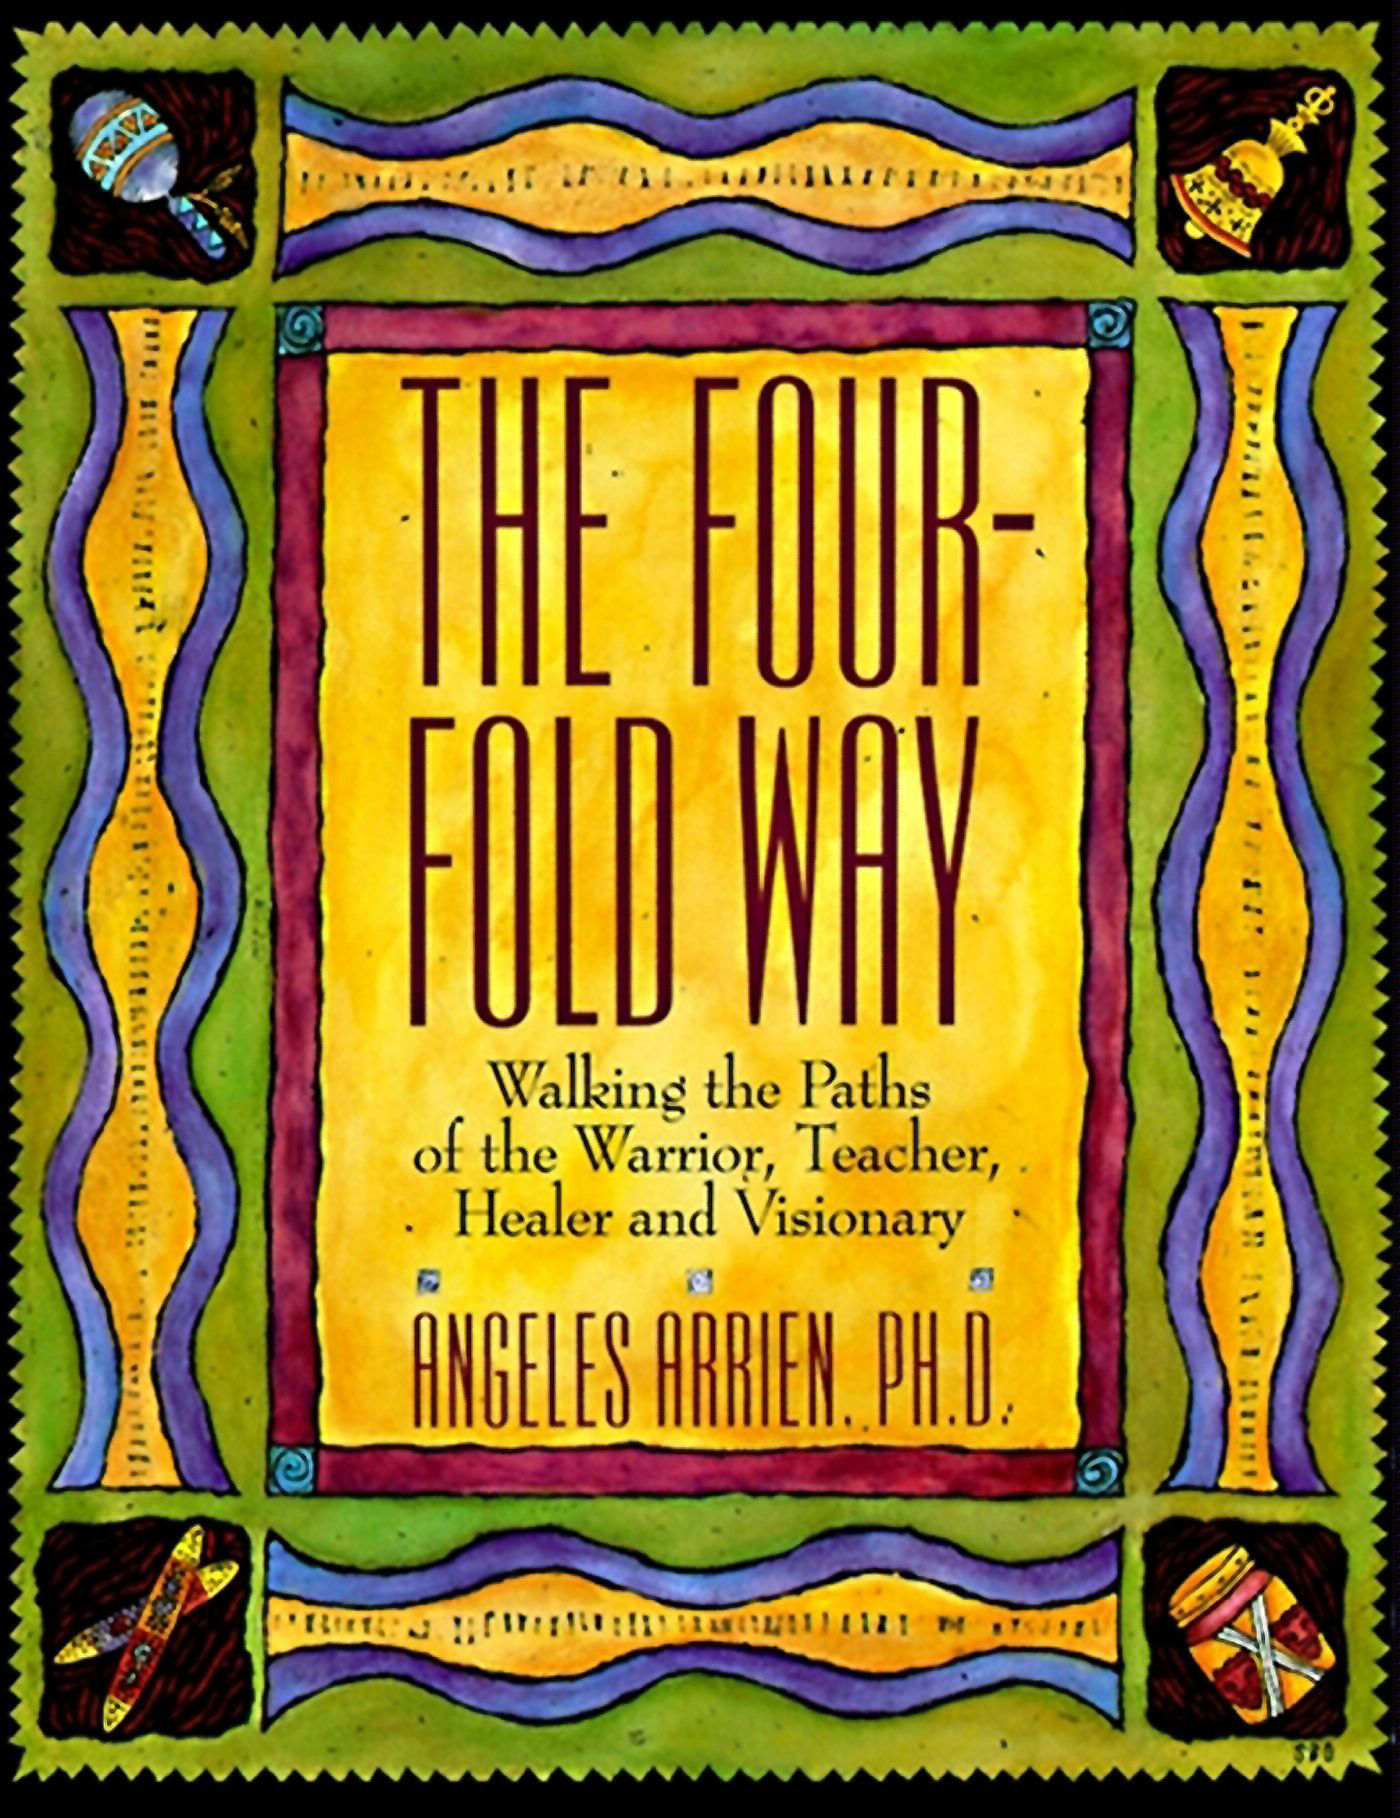 Angeles Arrien is a deceased anthropologist whose talks and work I am curious about. Her Ted Talk gave me an all new awareness of myself. This book explains one of her primary concepts of the Spiritual Human Journey.